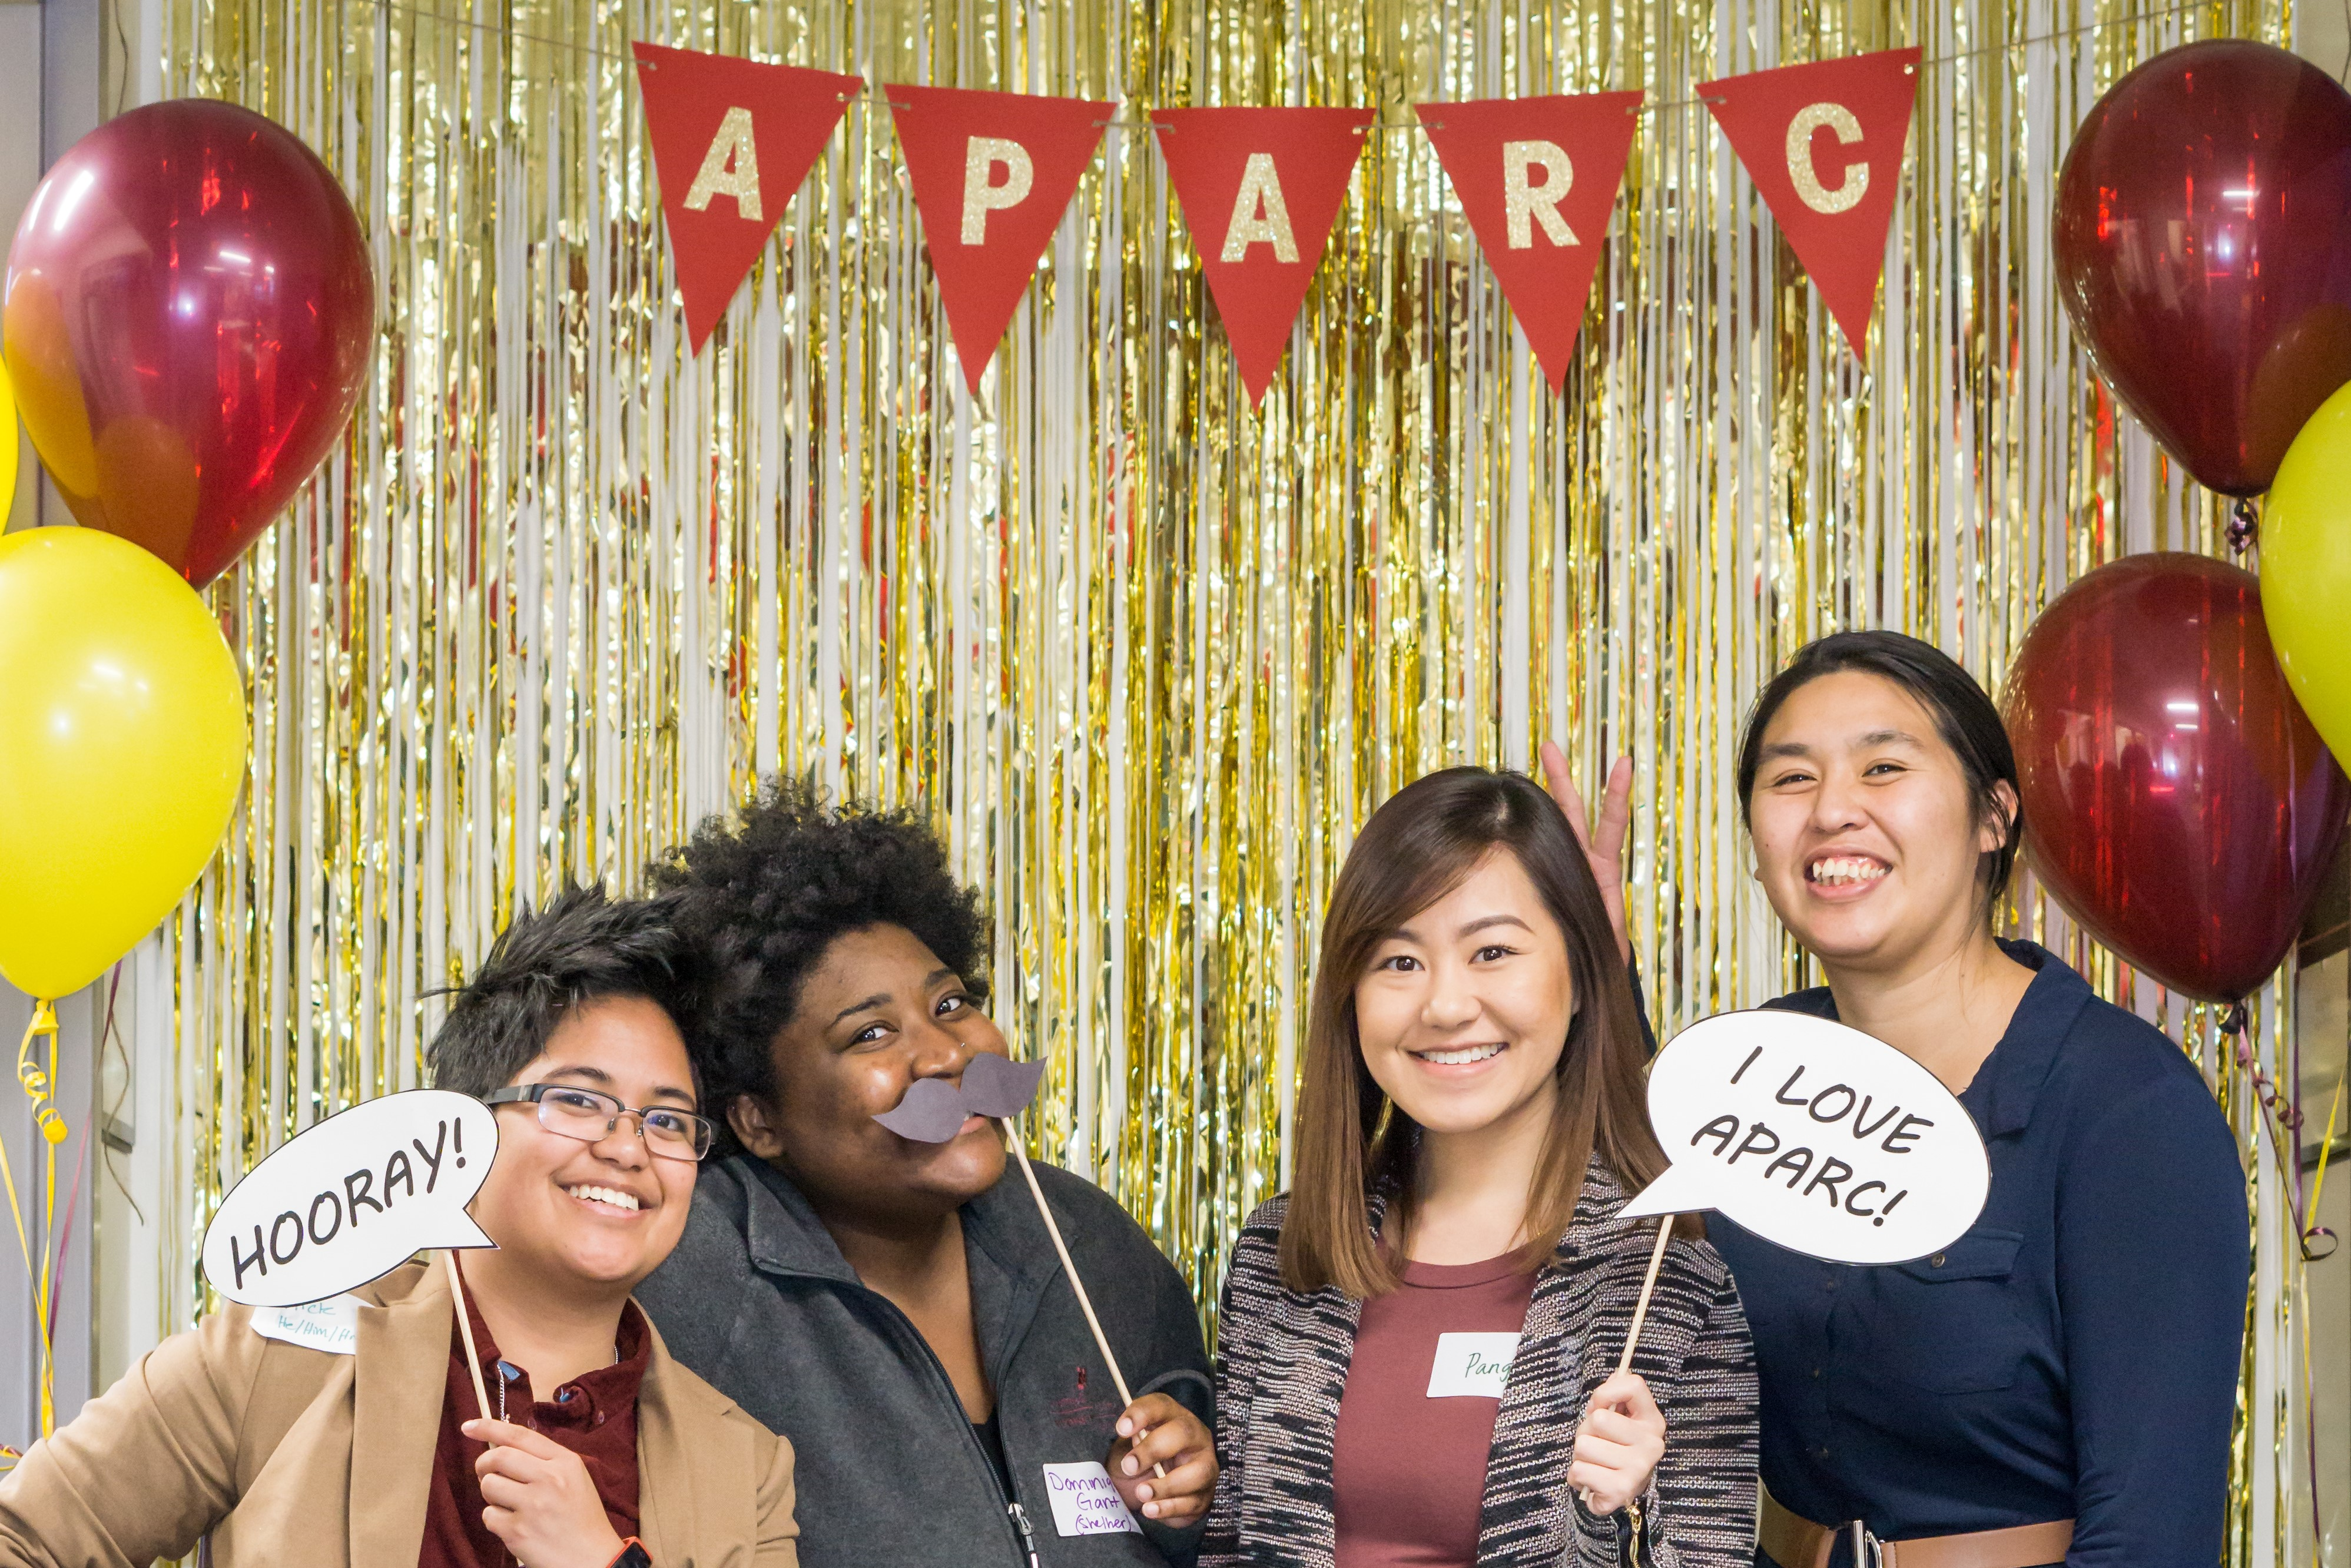 APARC Grand Opening 2018